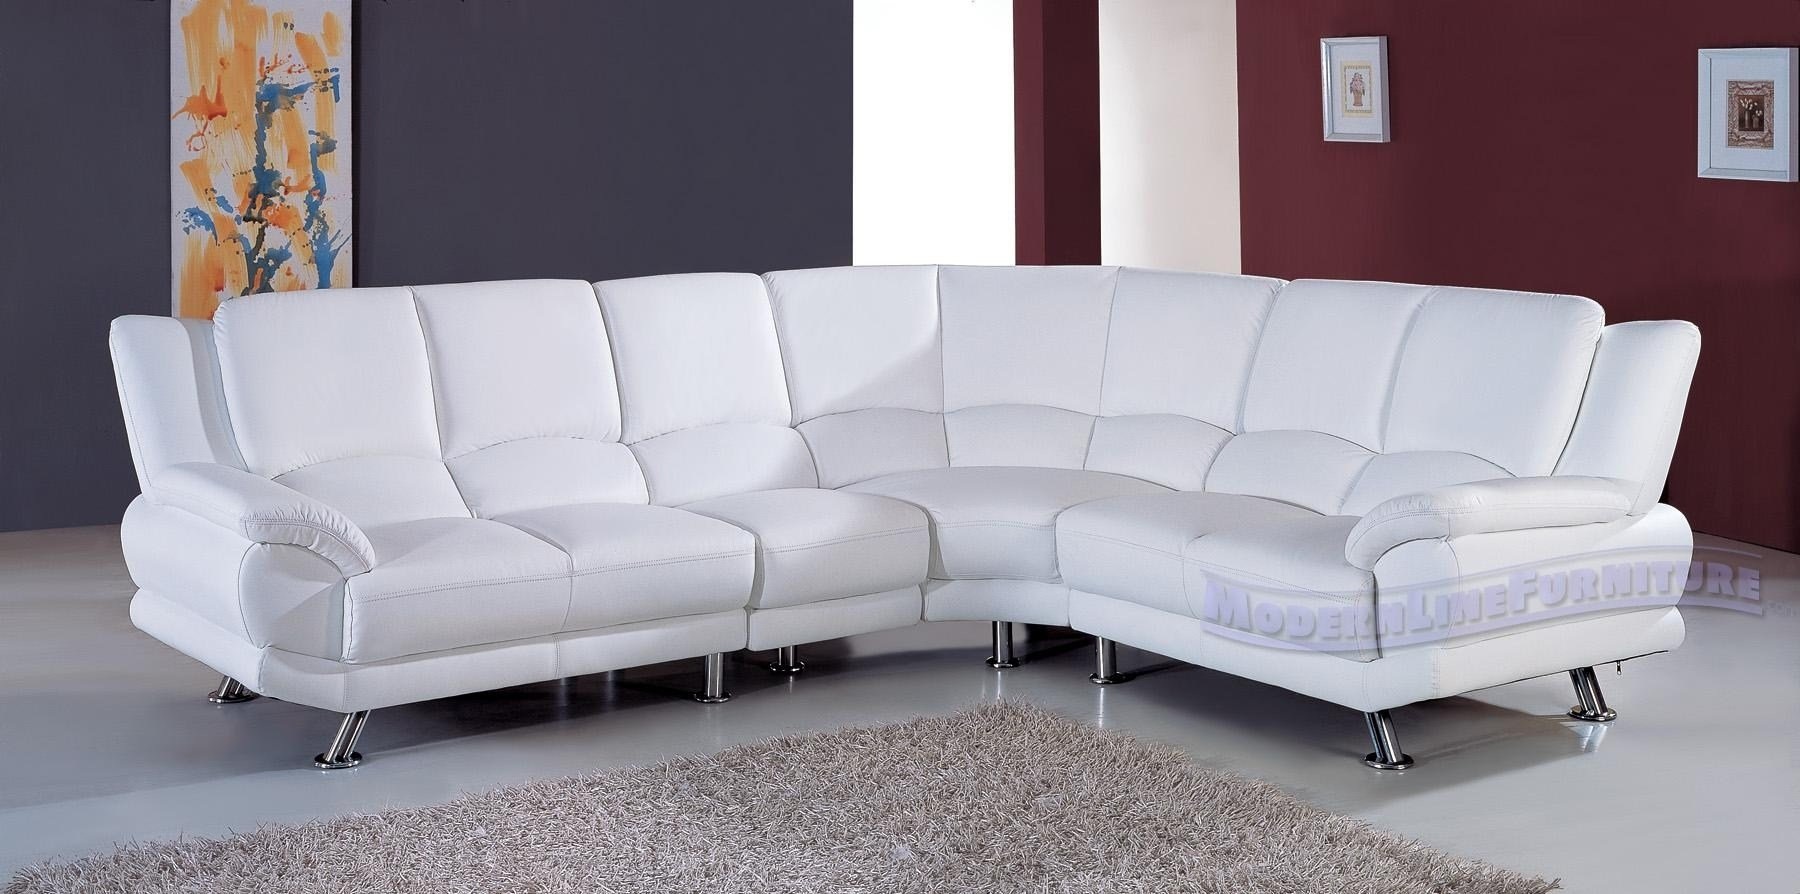 Best 2019 Latest Sectional Sofas Under 600 Sofa Ideas With Pictures